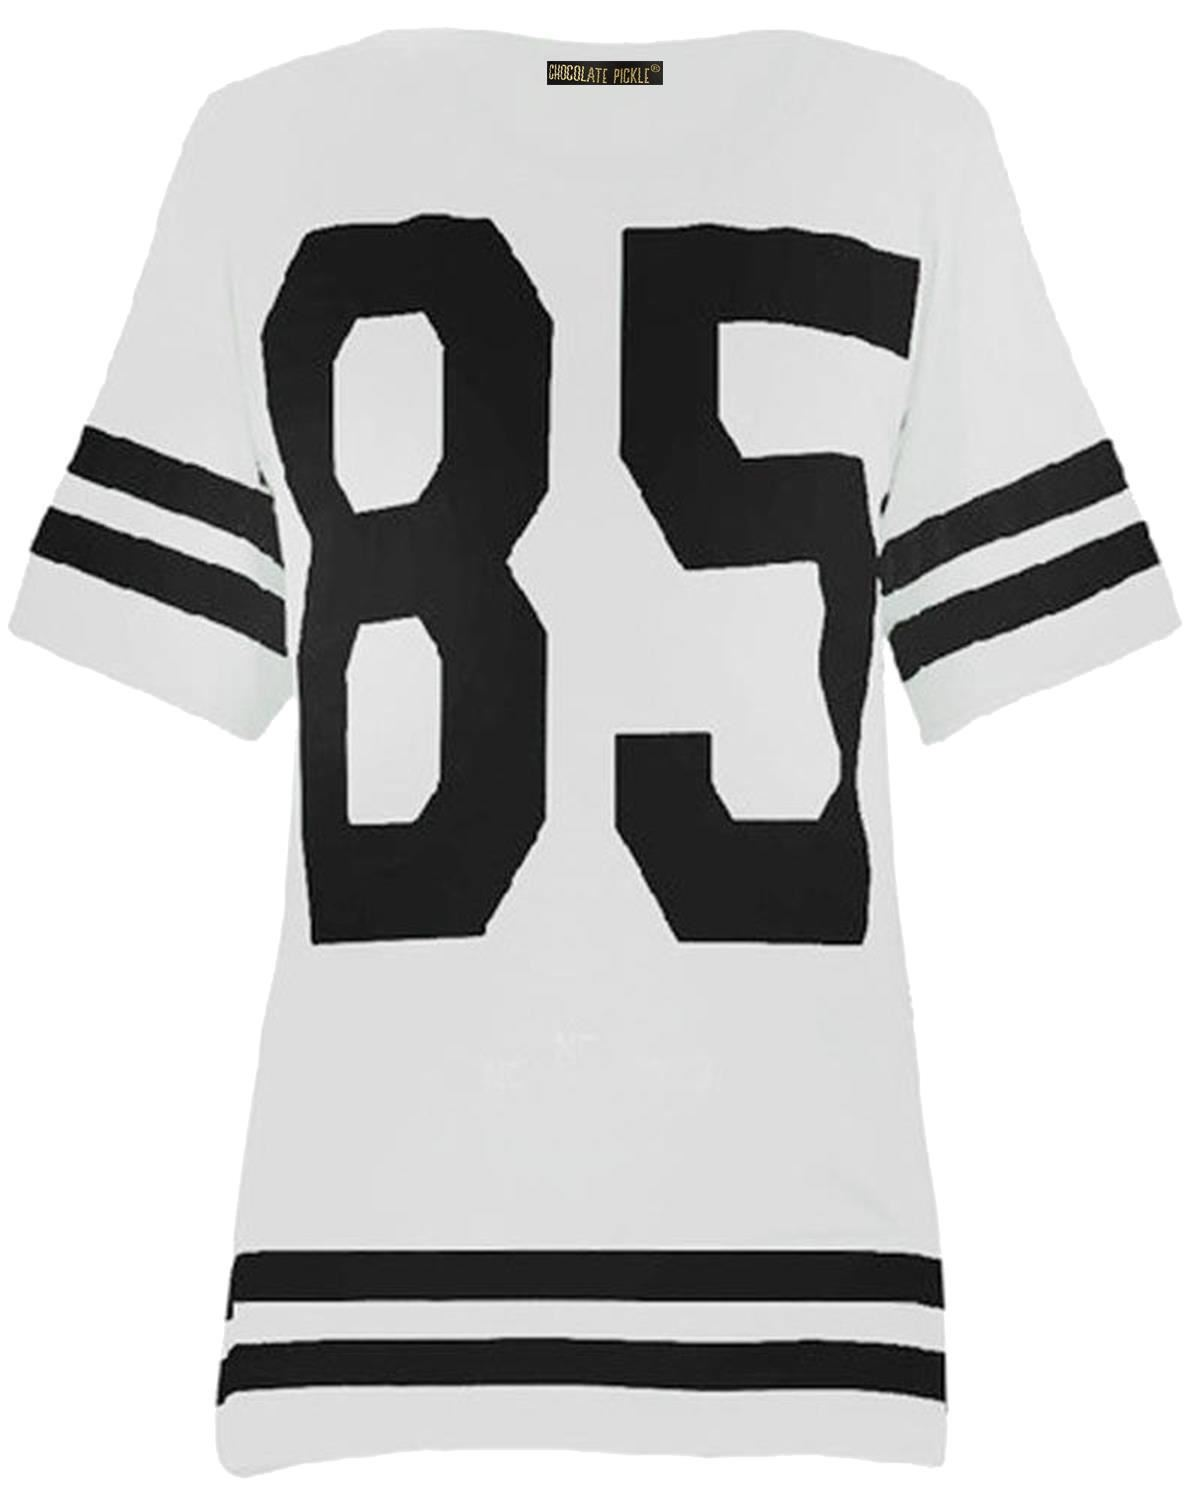 New-Womens-Plus-Size-Number-Printed-White-Varsity-Stripe-T-Shirts-12-26